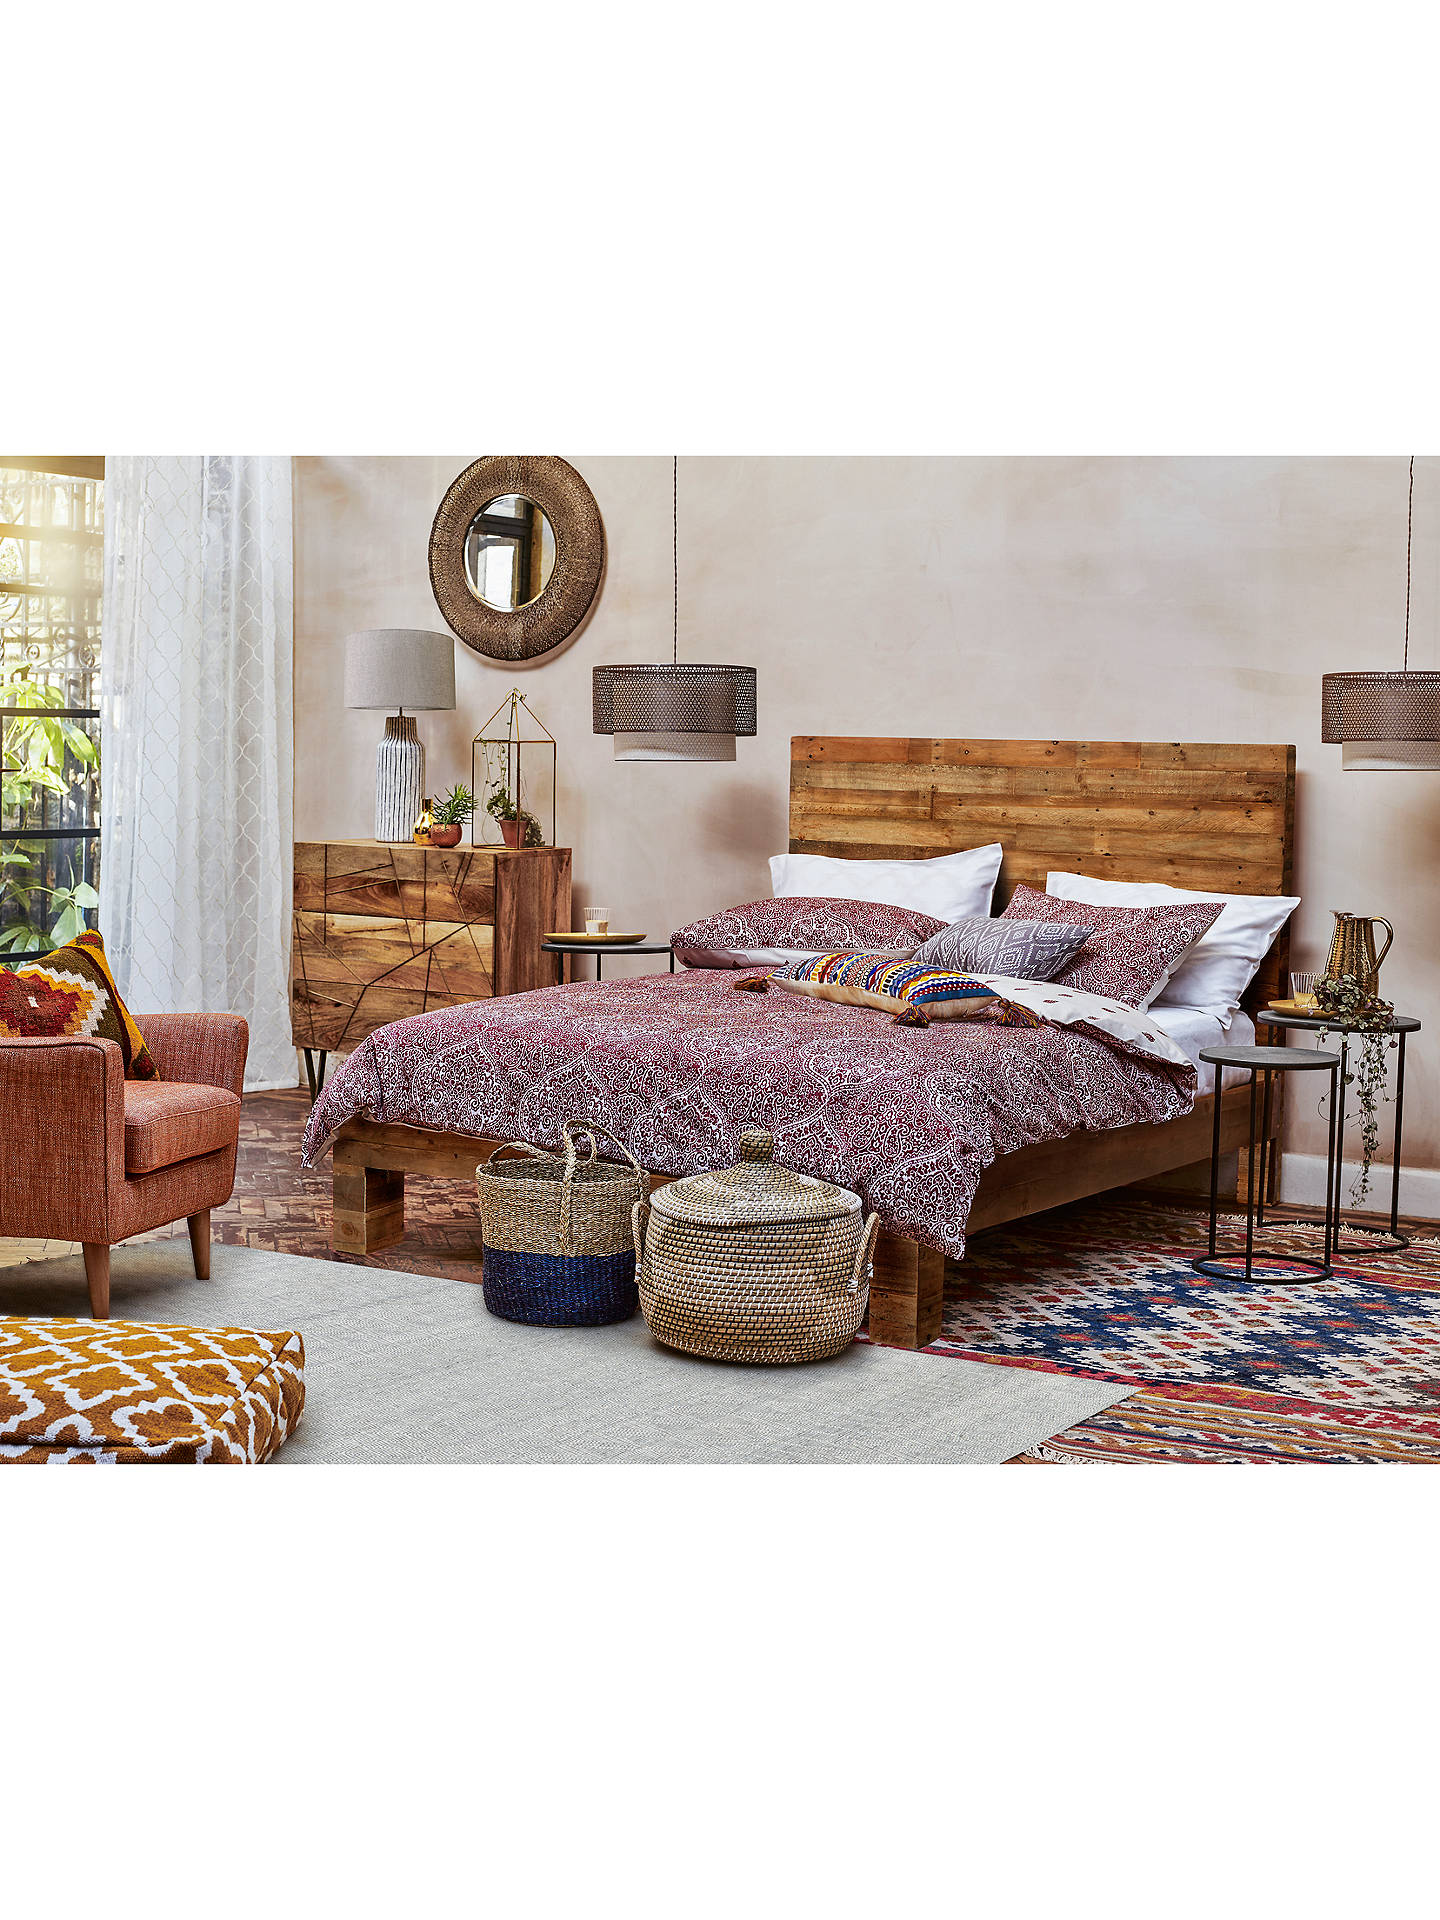 Buy Roar + Rabbit for west elm Geo Inlay 3 Drawer Chest Online at johnlewis.com